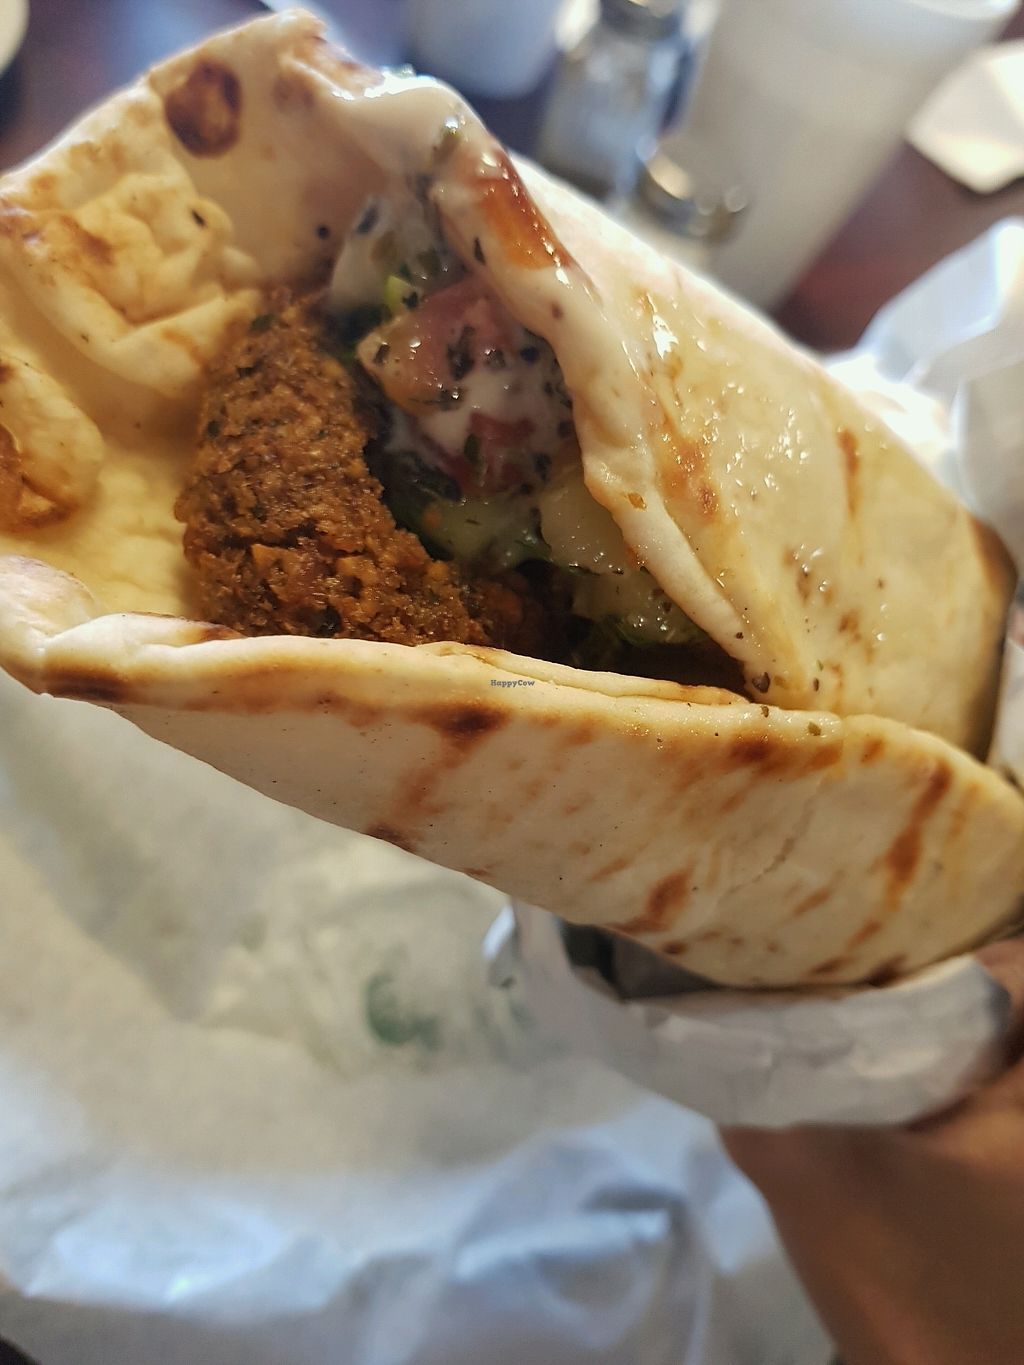 """Photo of King O Falafel  by <a href=""""/members/profile/Cynthiab"""">Cynthiab</a> <br/>falafel pita ask without sauce <br/> April 13, 2018  - <a href='/contact/abuse/image/117643/385344'>Report</a>"""